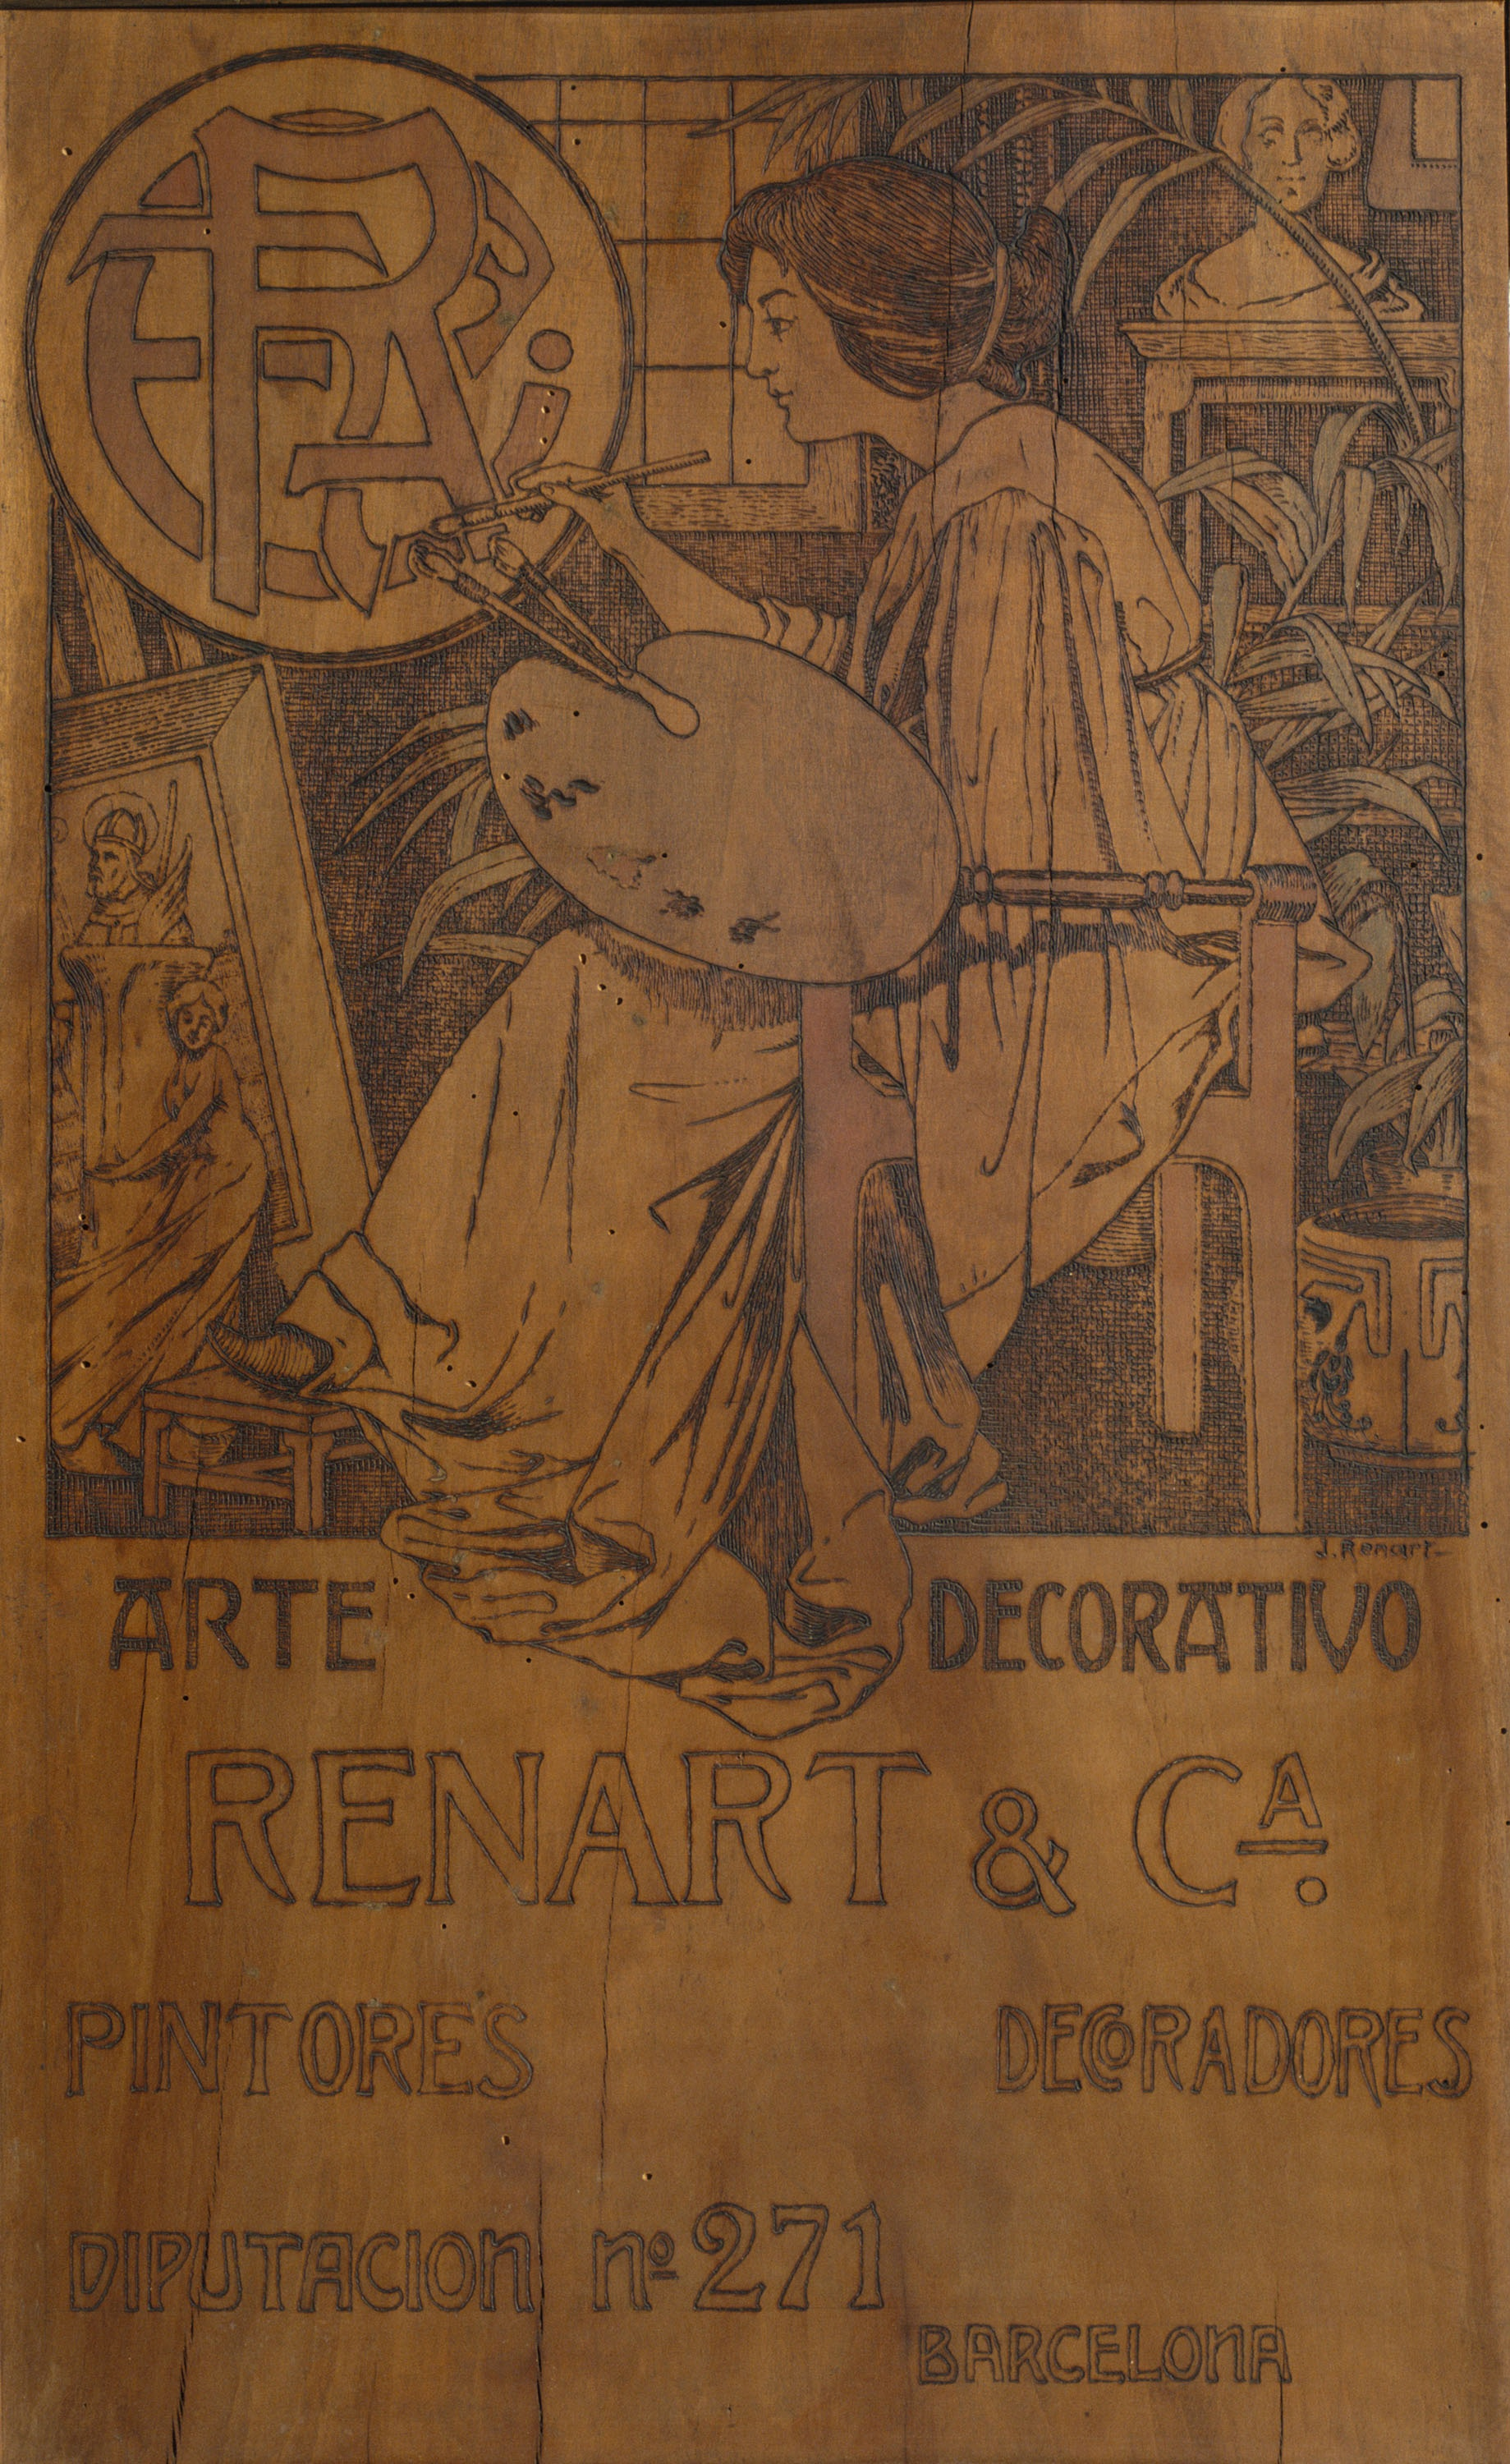 Joaquim Renart - Commercial advertisement of Casa Renart - 1906-1907